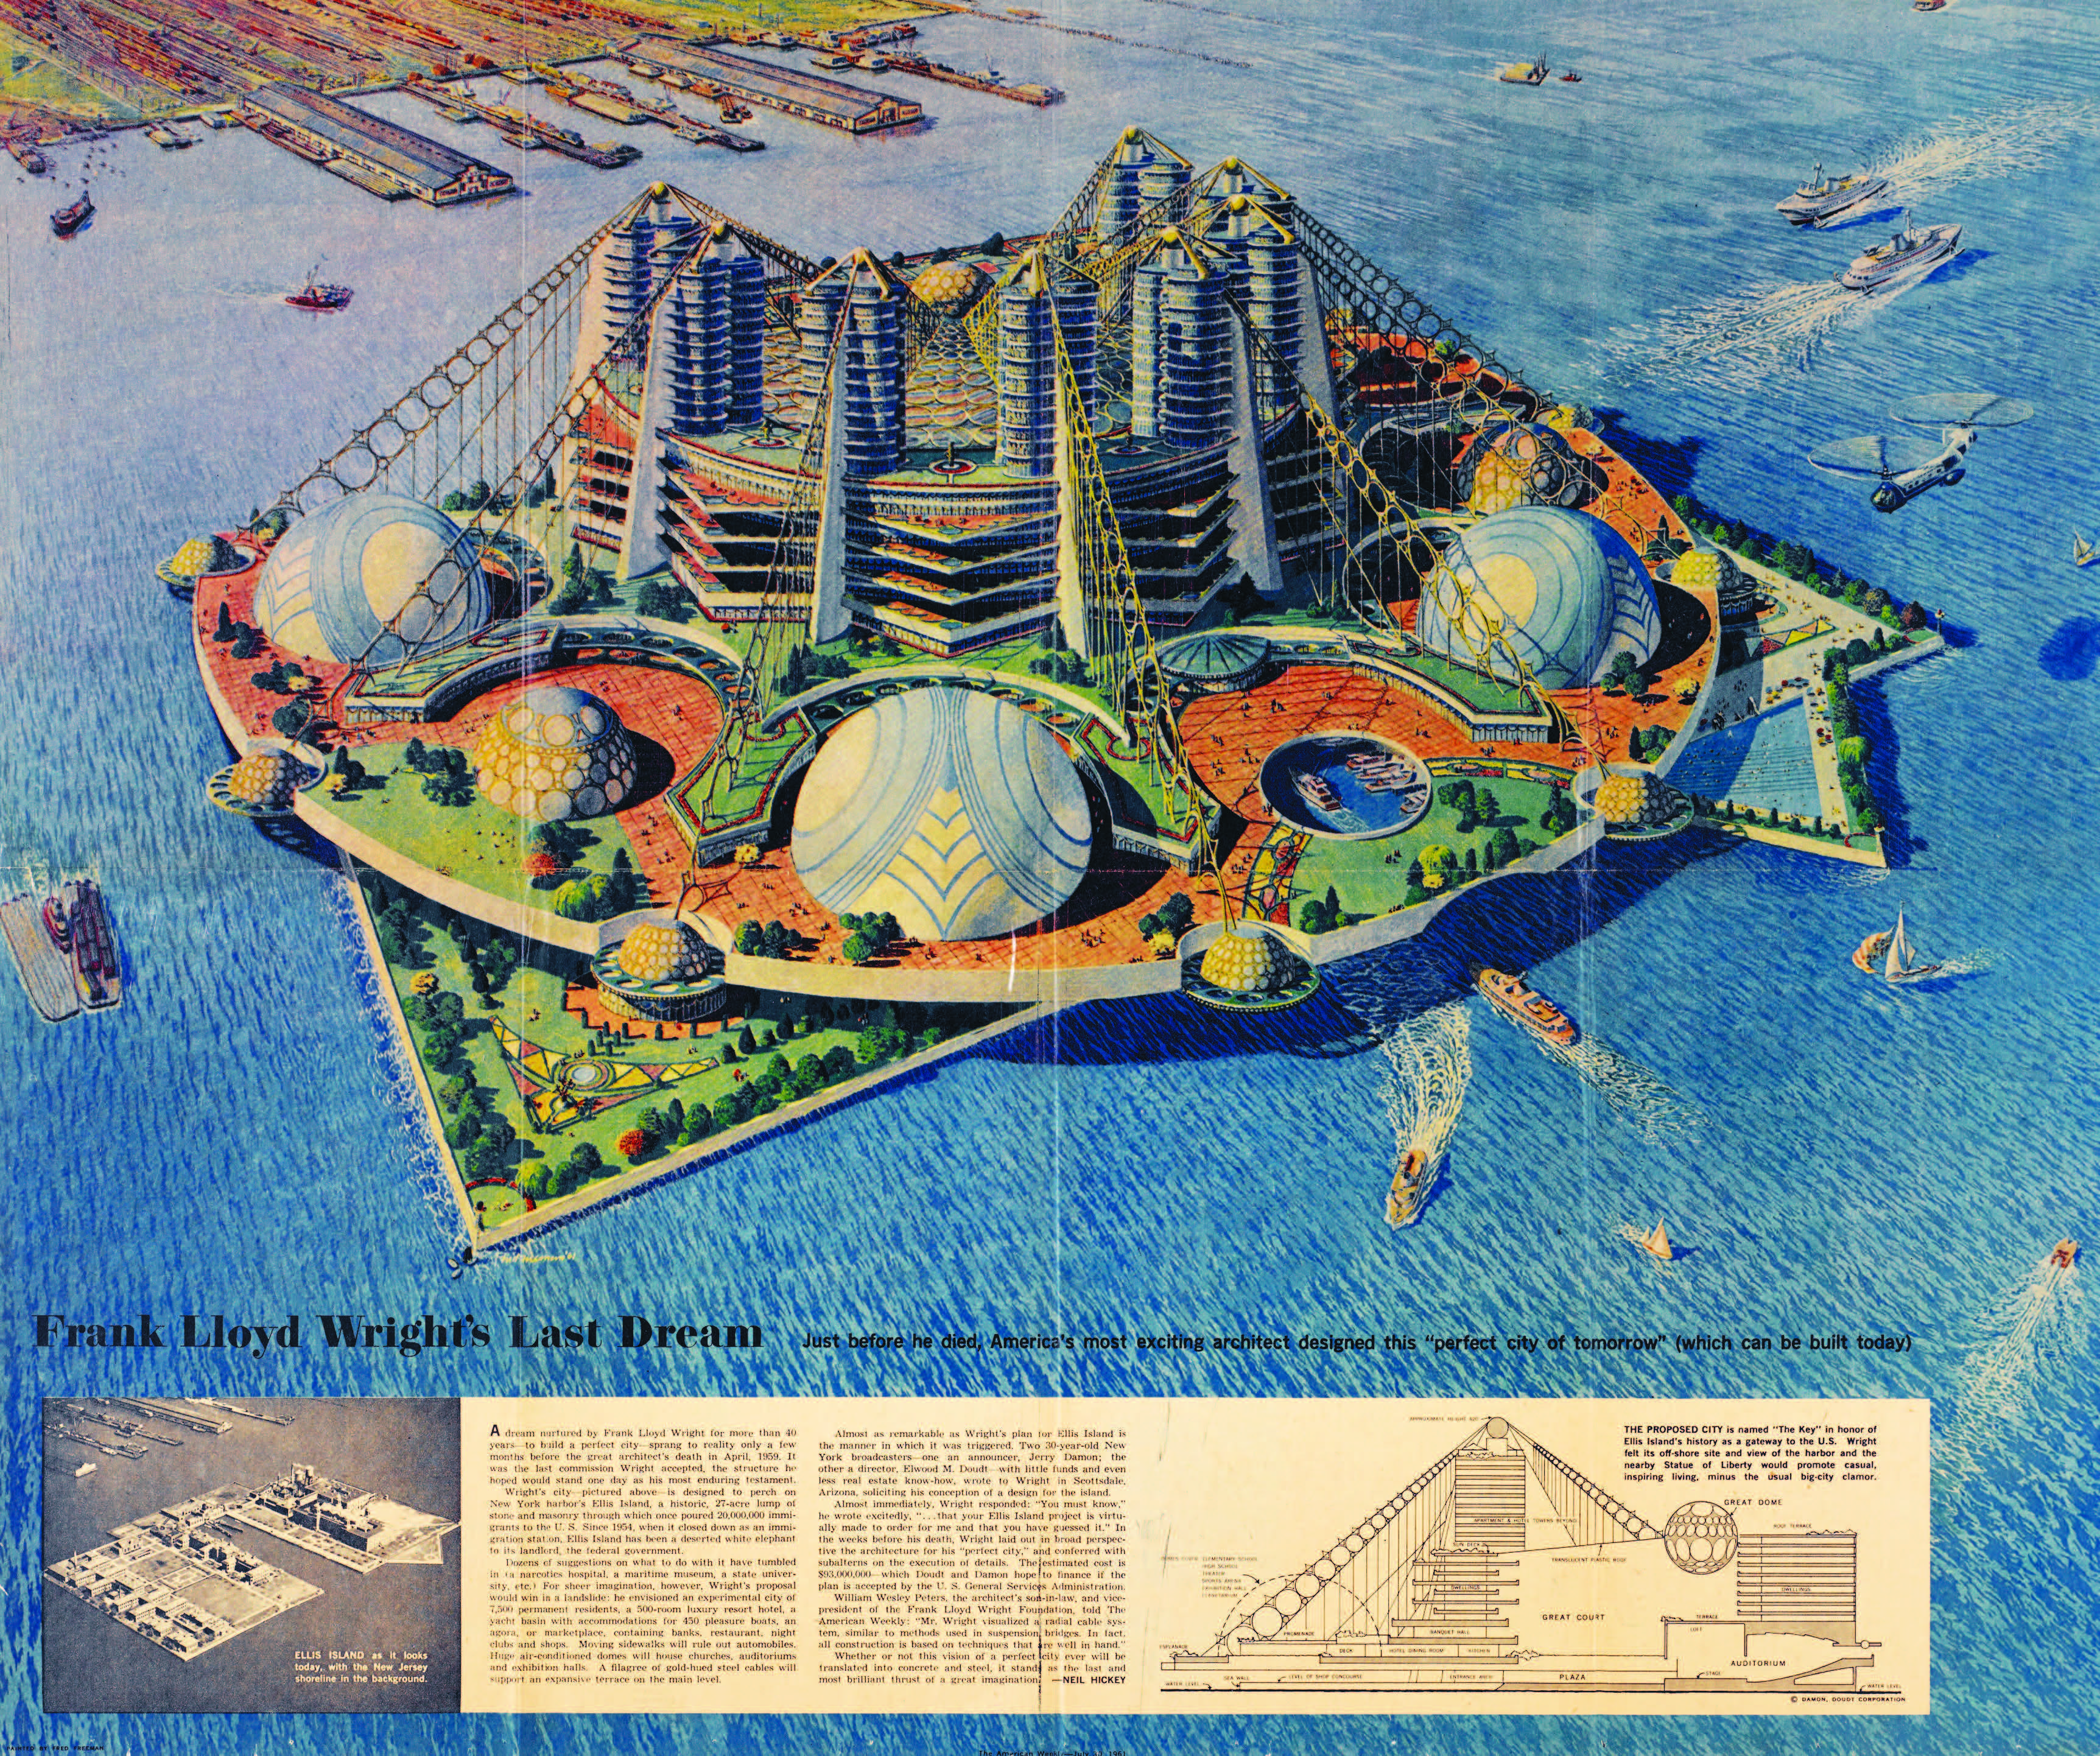 "Frank Lloyd Wright's plan for the decommissioned Ellis Island would promote ""casual, inspired living, minus the usual big-city clamour."" Credit: American Weekly, July 30, 1961"